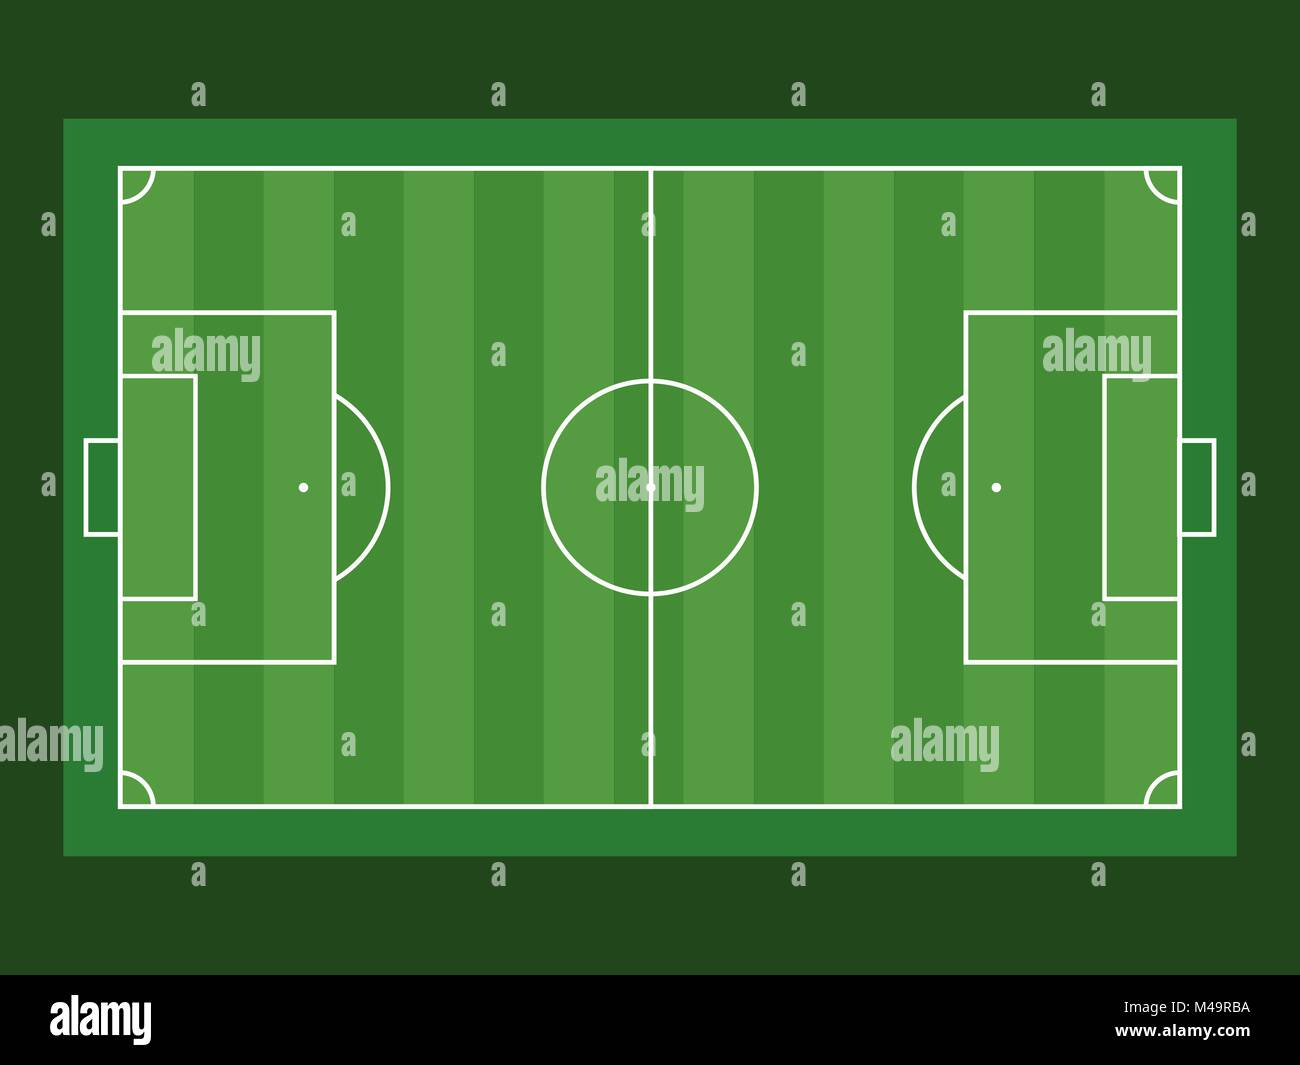 Football field aerial view on green background. Flat vector illustration - Stock Vector